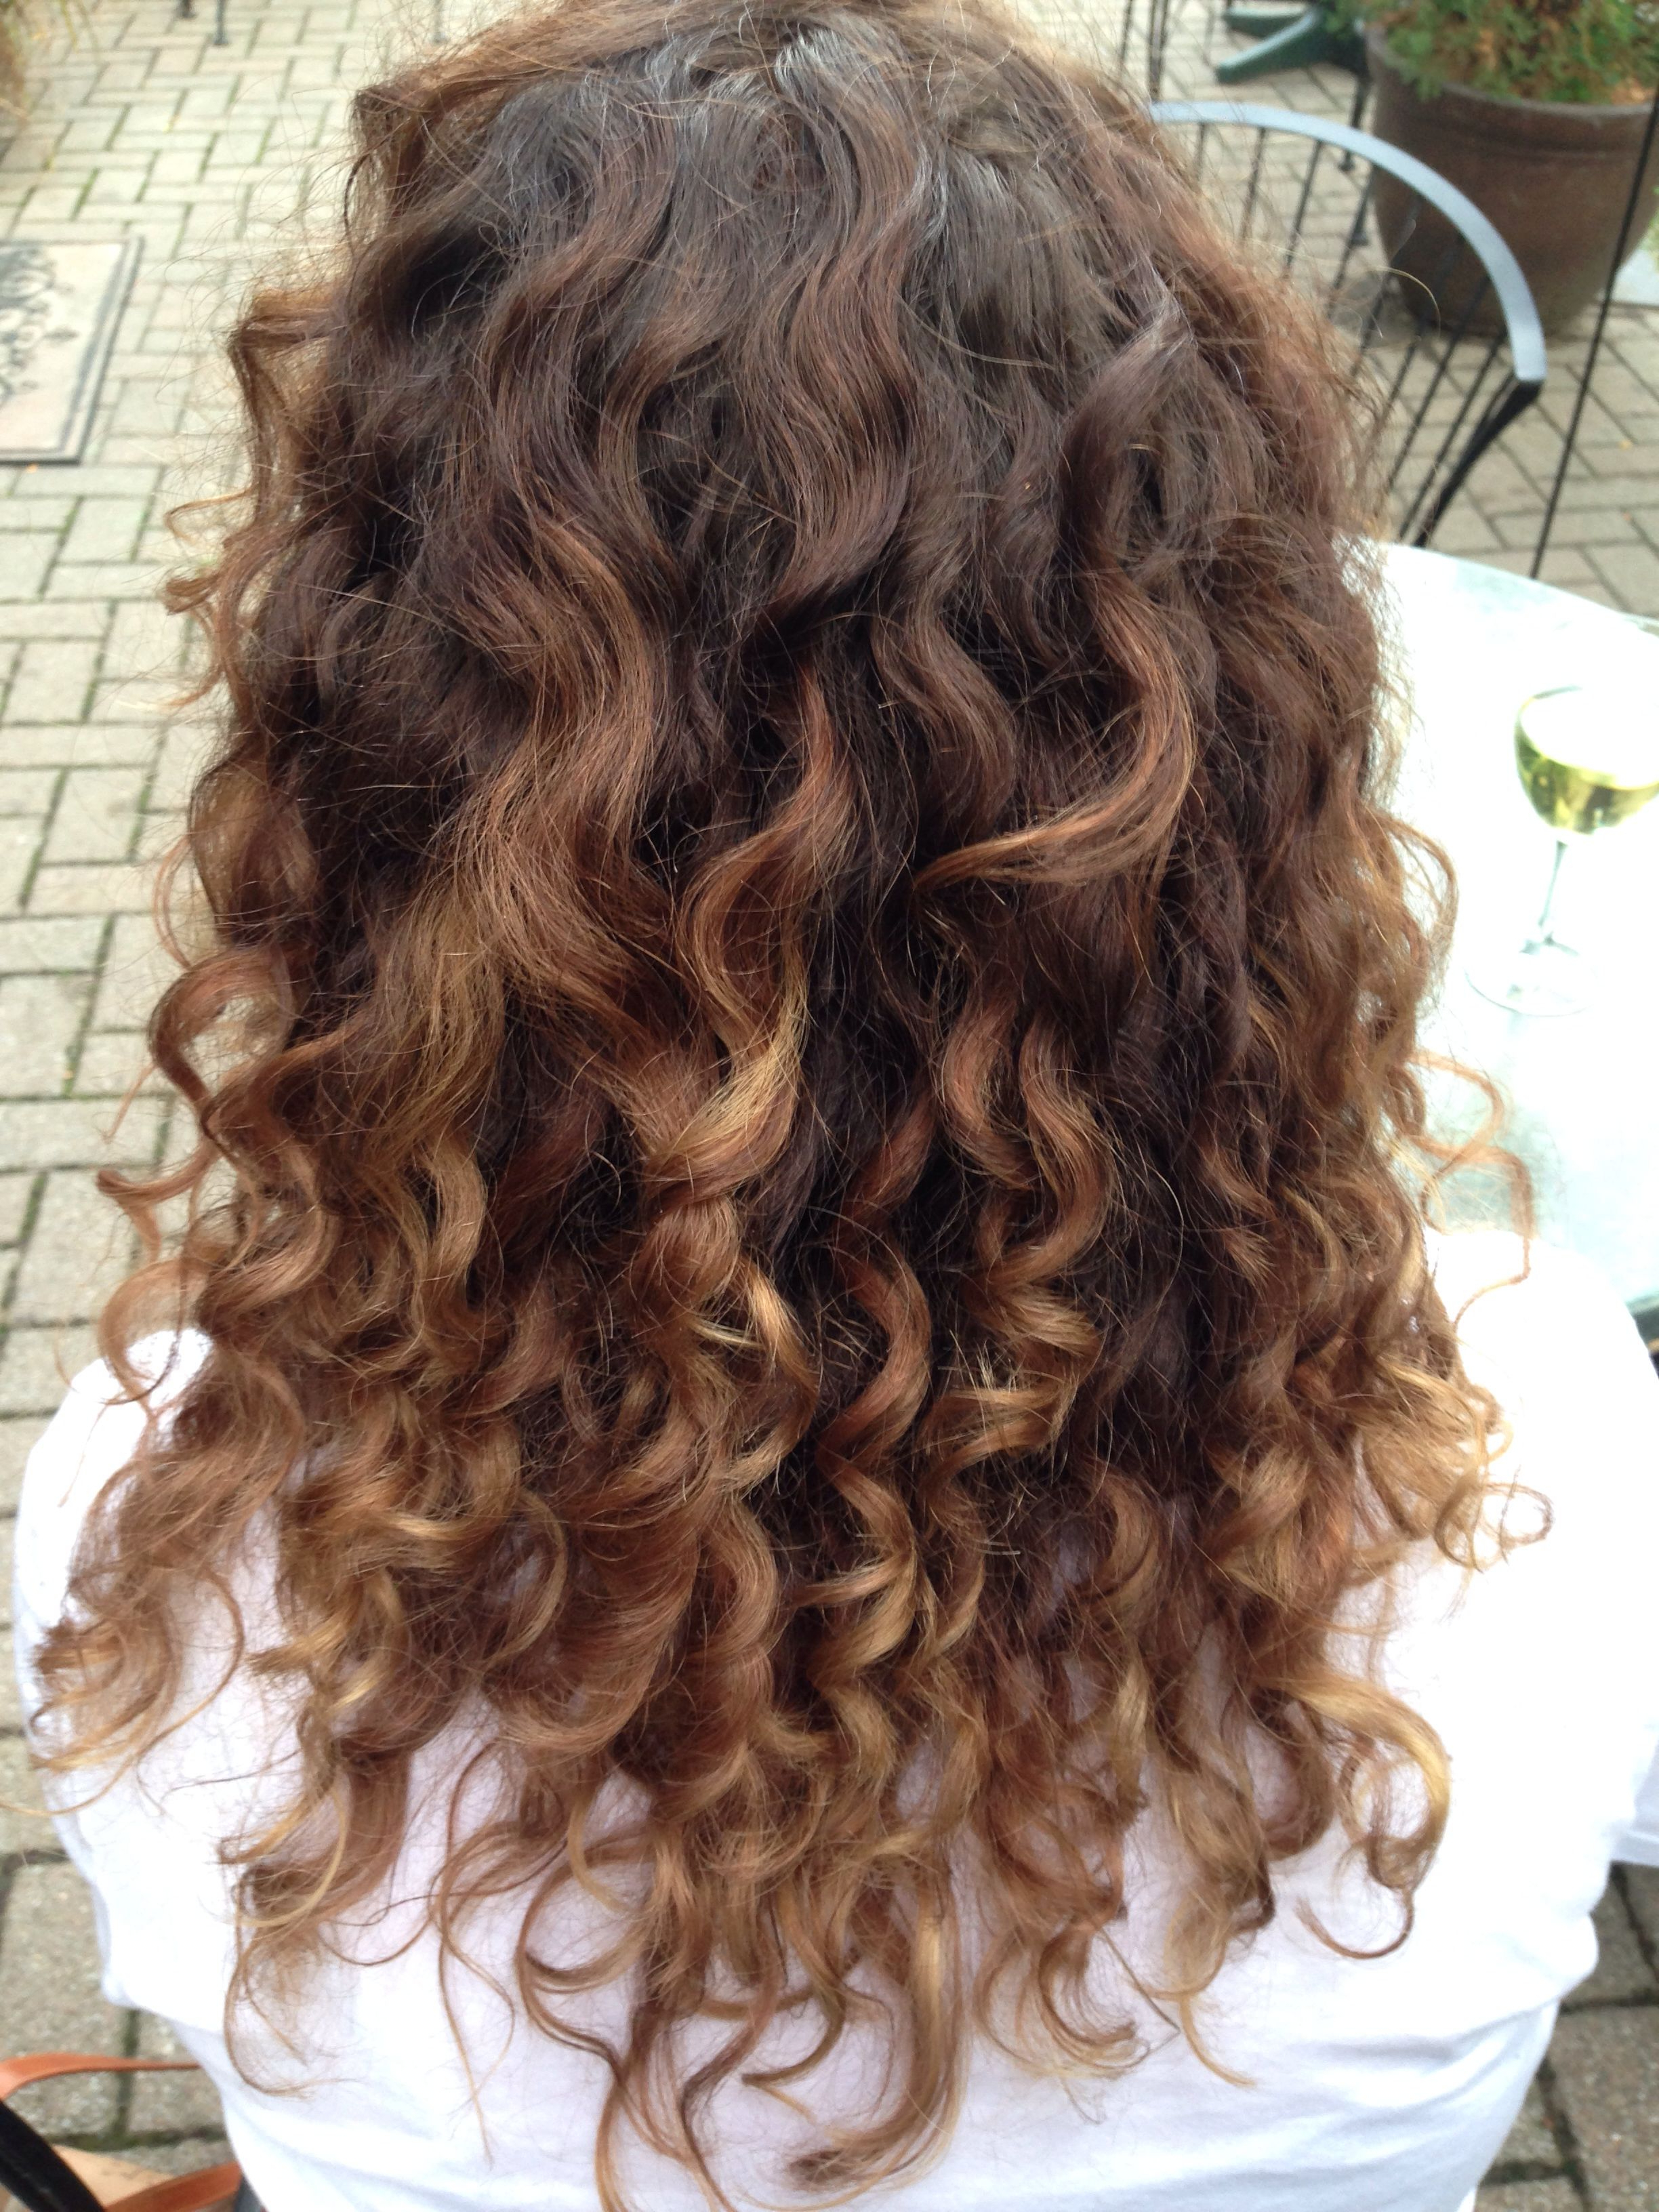 Naturally Curly Hair Carmel Ombréthe Best In The Business within Brown Curly Hairstyles With Highlights